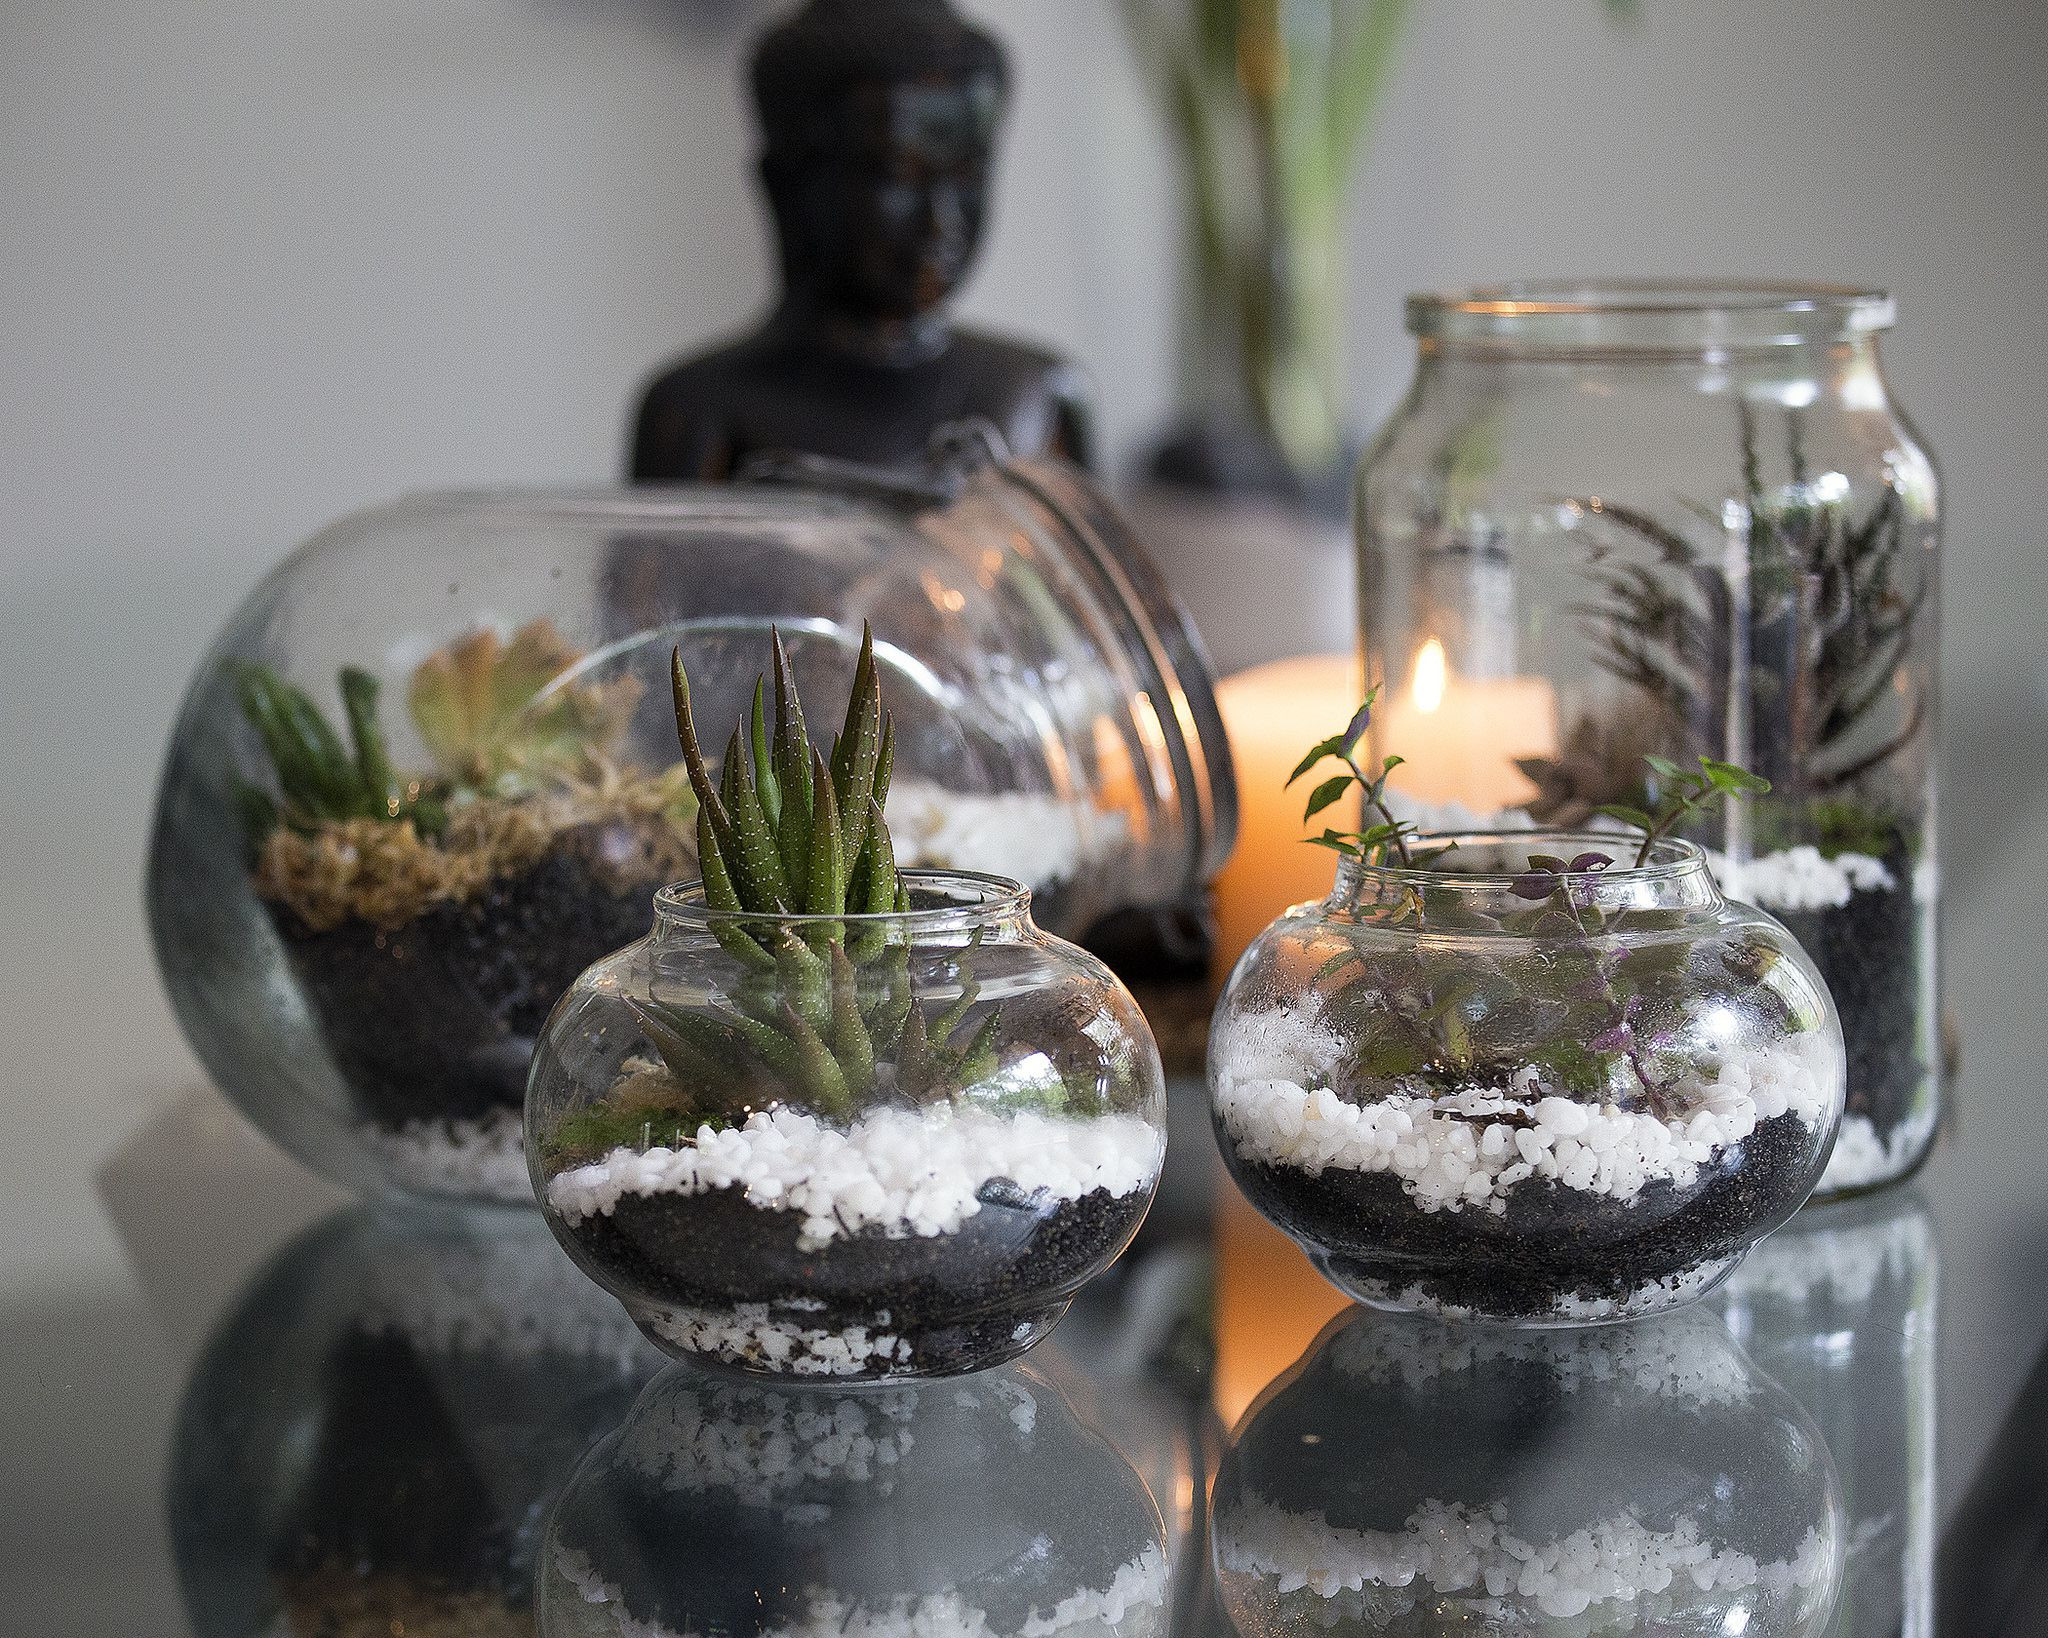 light bulb vase michaels of common terrarium mistakes and how to avoid them pertaining to terrarium 22867406835 68063d4d0a k 58e699025f9b58ef7ee5c35d